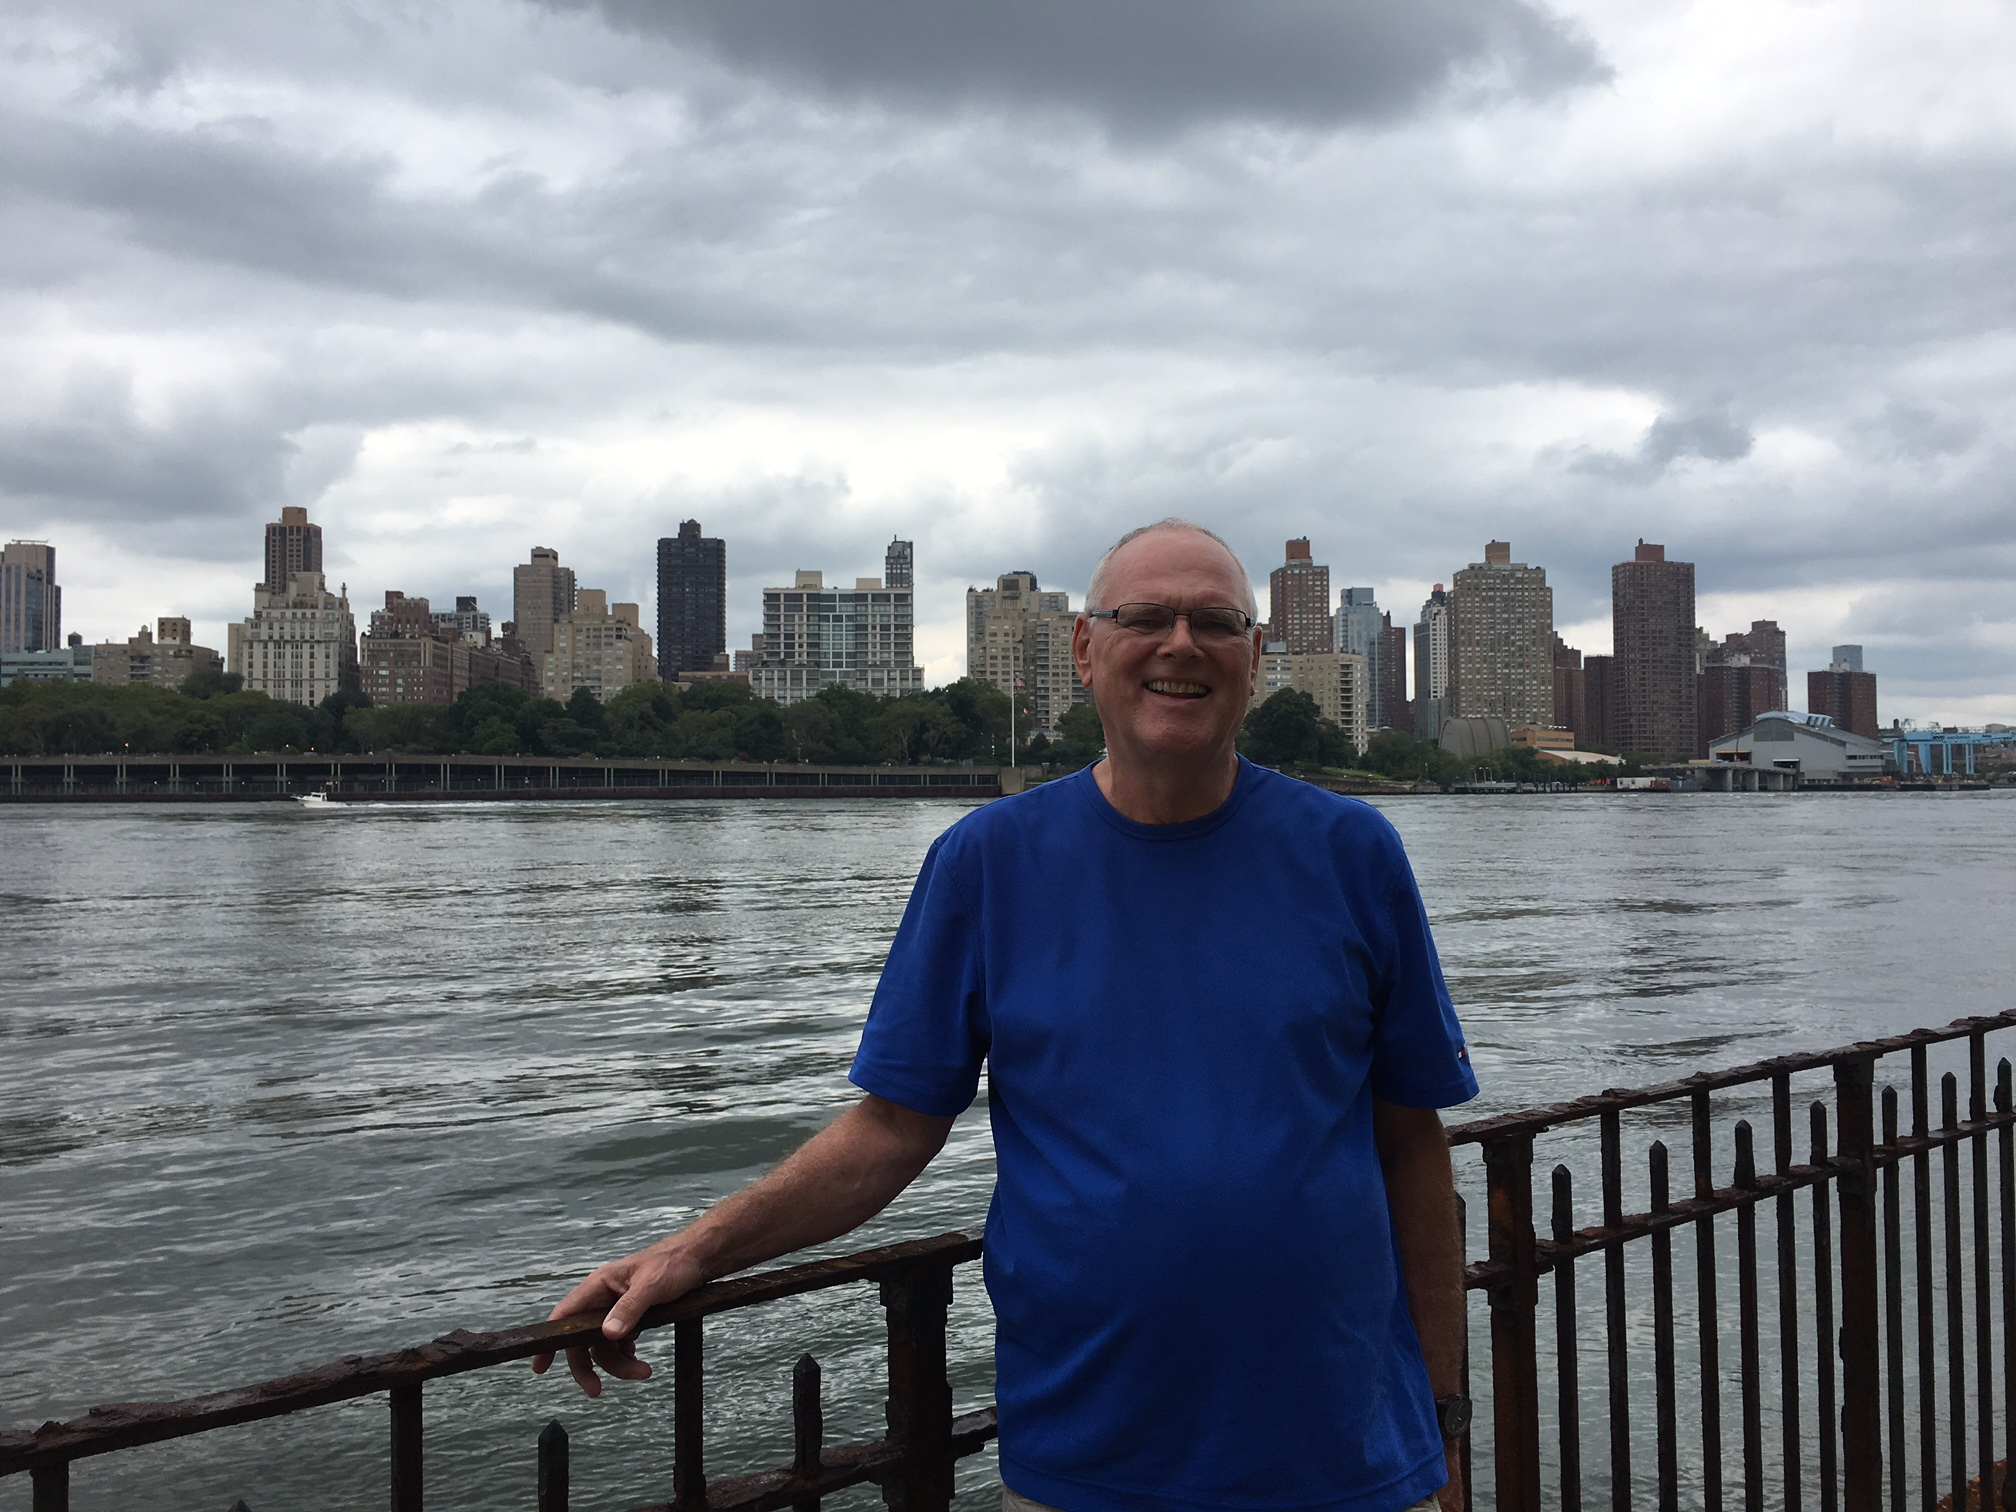 Bernd with view of Manhattan behind  8-5-17